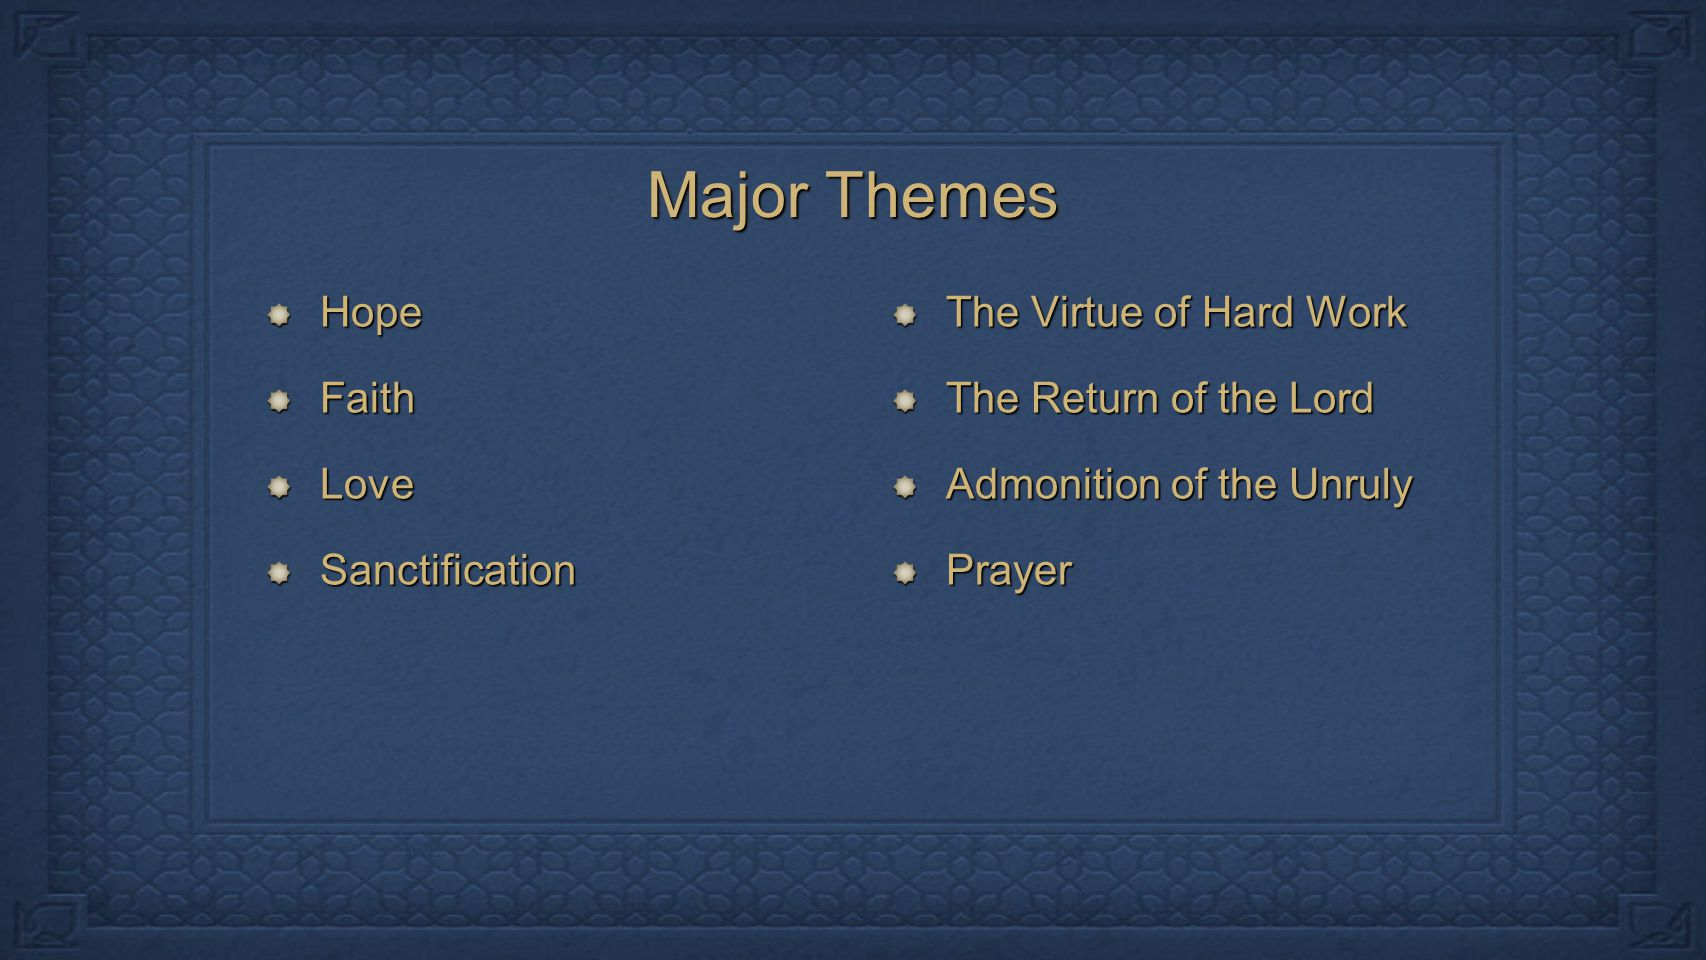 Major Themes HopeFaithLoveSanctification The Virtue of Hard Work The Return of the Lord Admonition of the Unruly PrayerHopeFaithLoveSanctification The Virtue of Hard Work The Return of the Lord Admonition of the Unruly Prayer